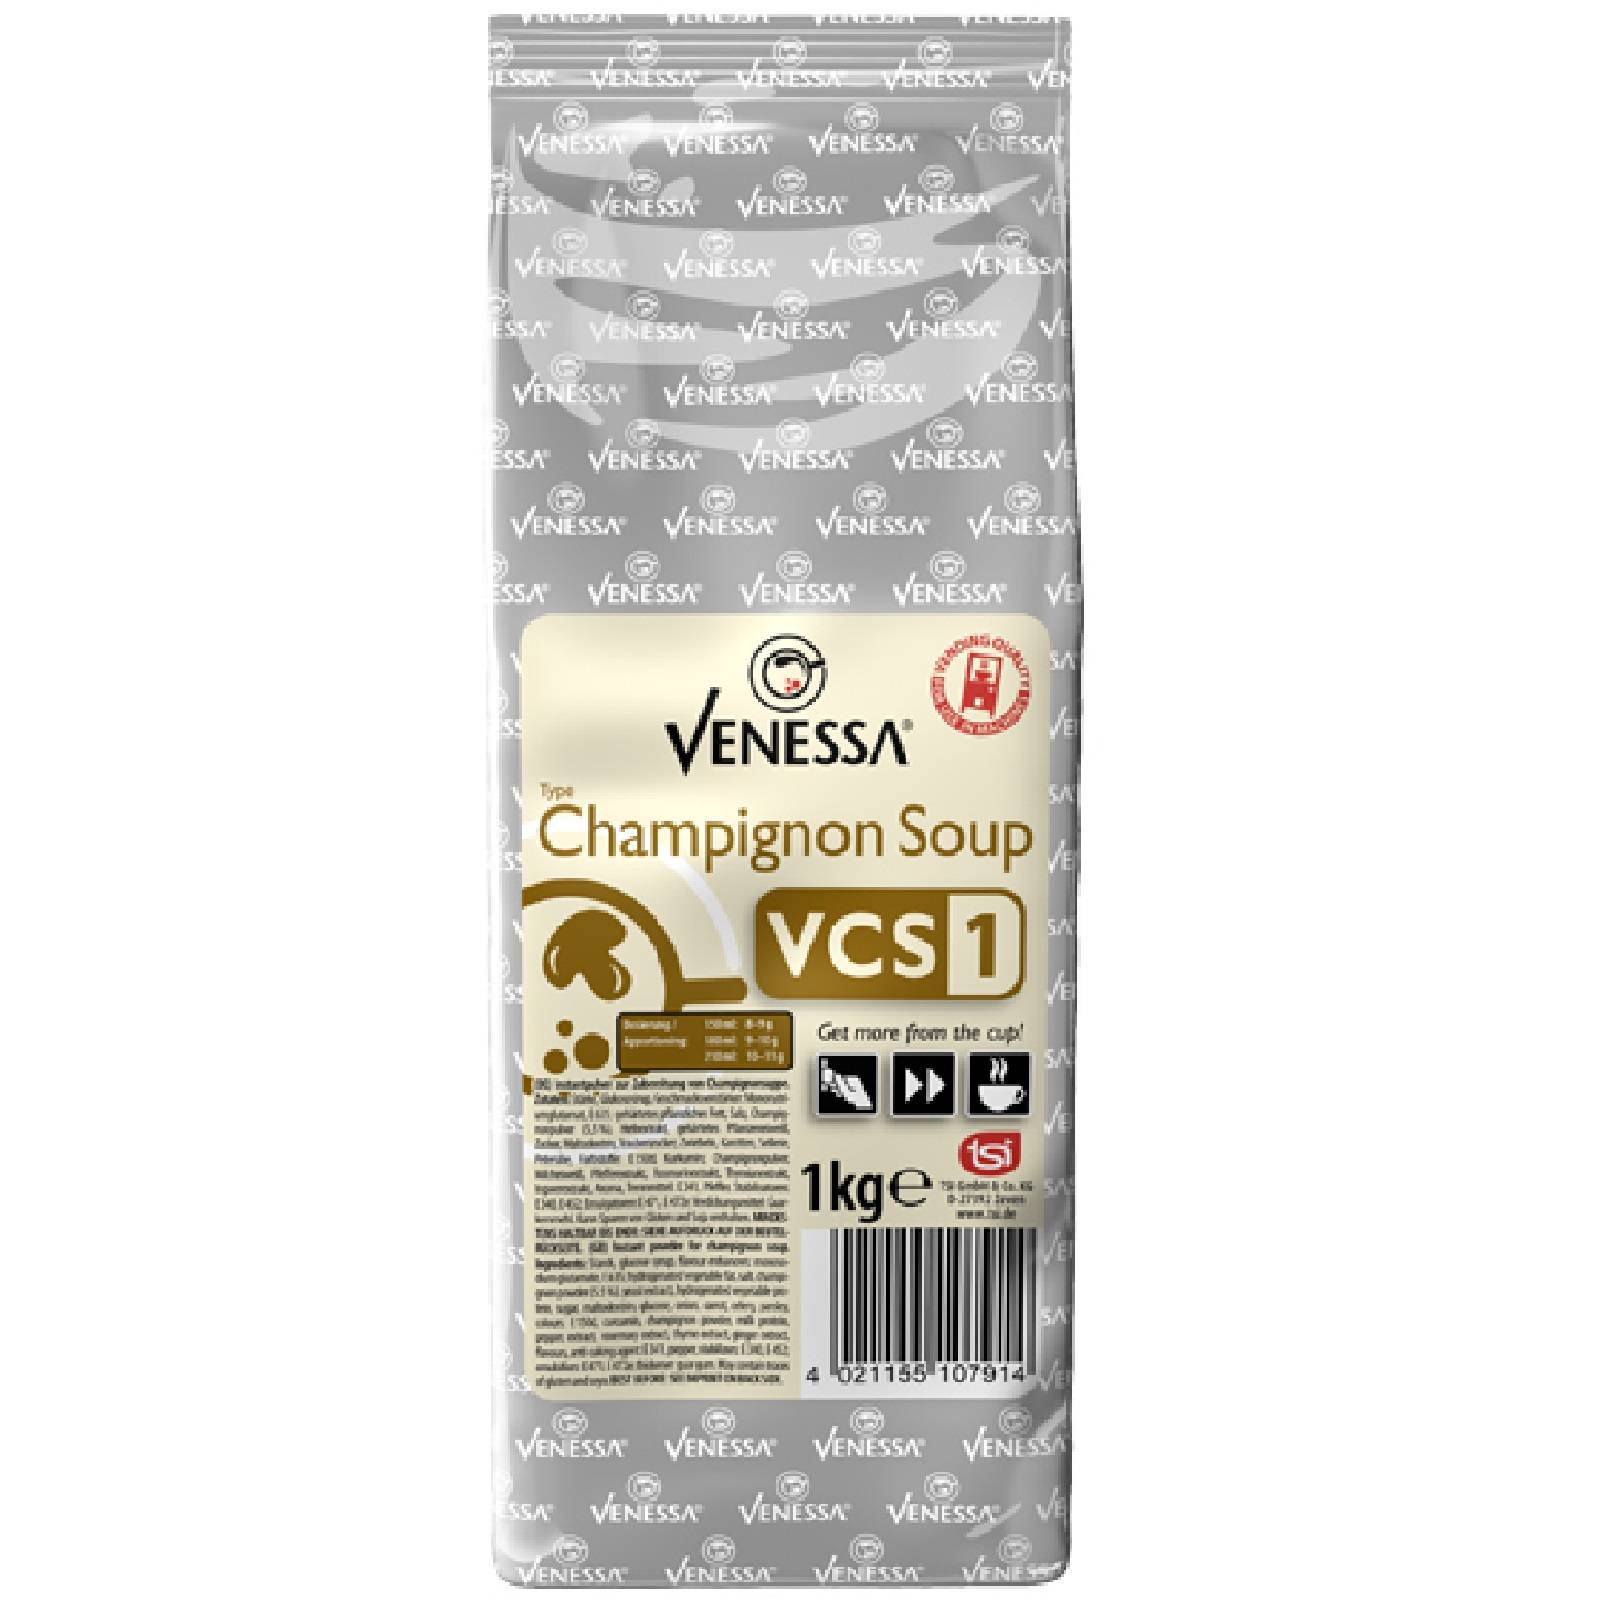 venessa champignon soup vcs1 cremesuppe 1kg f r automaten. Black Bedroom Furniture Sets. Home Design Ideas